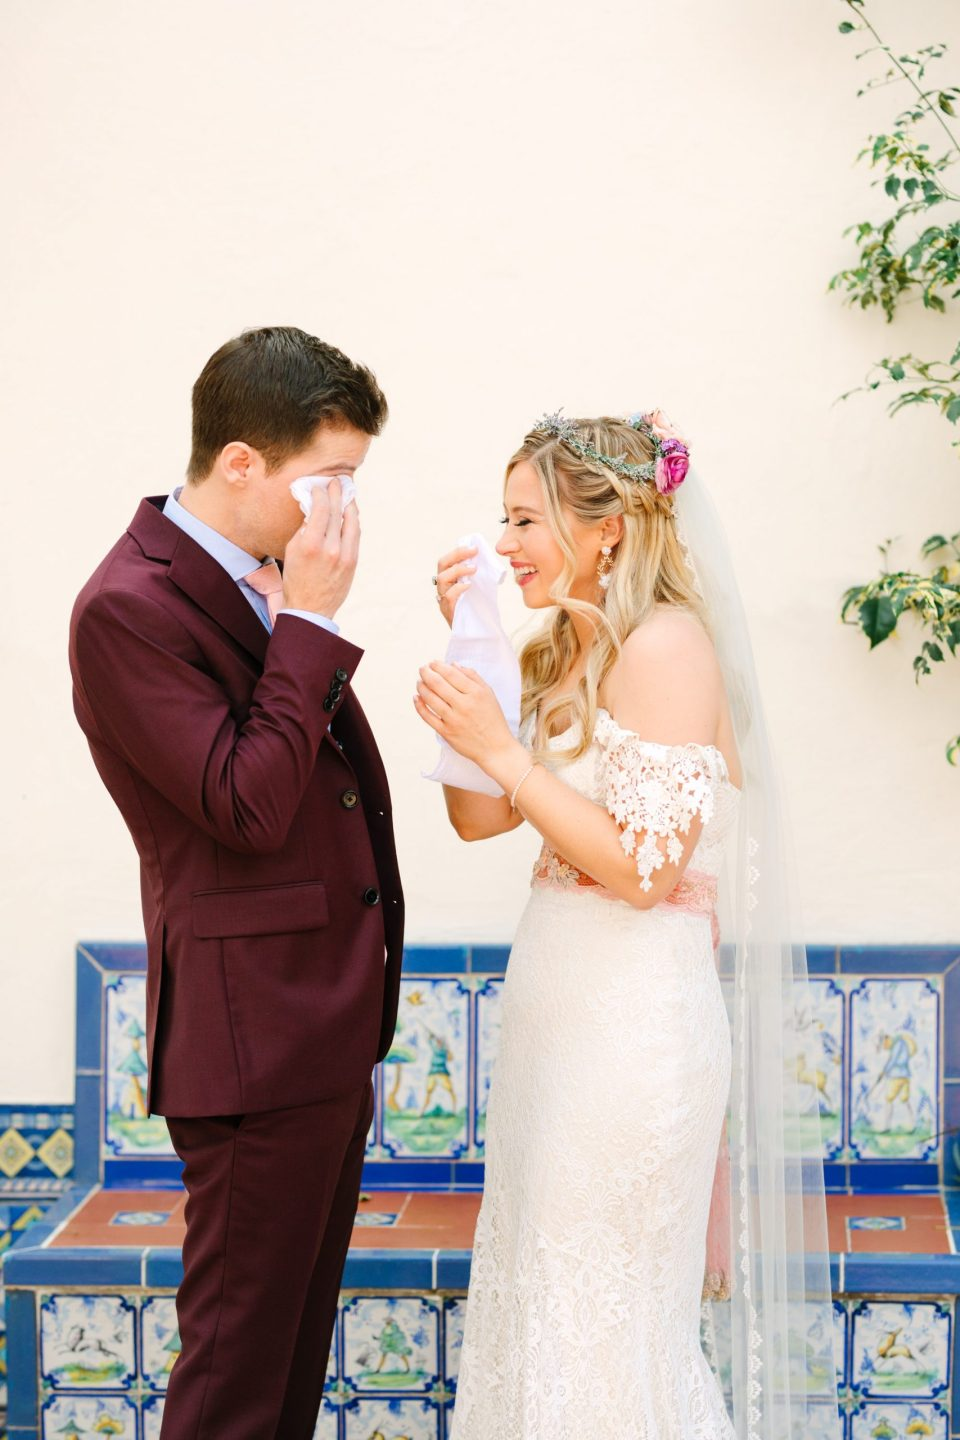 Emotional first look with bride and groom - www.marycostaweddings.com